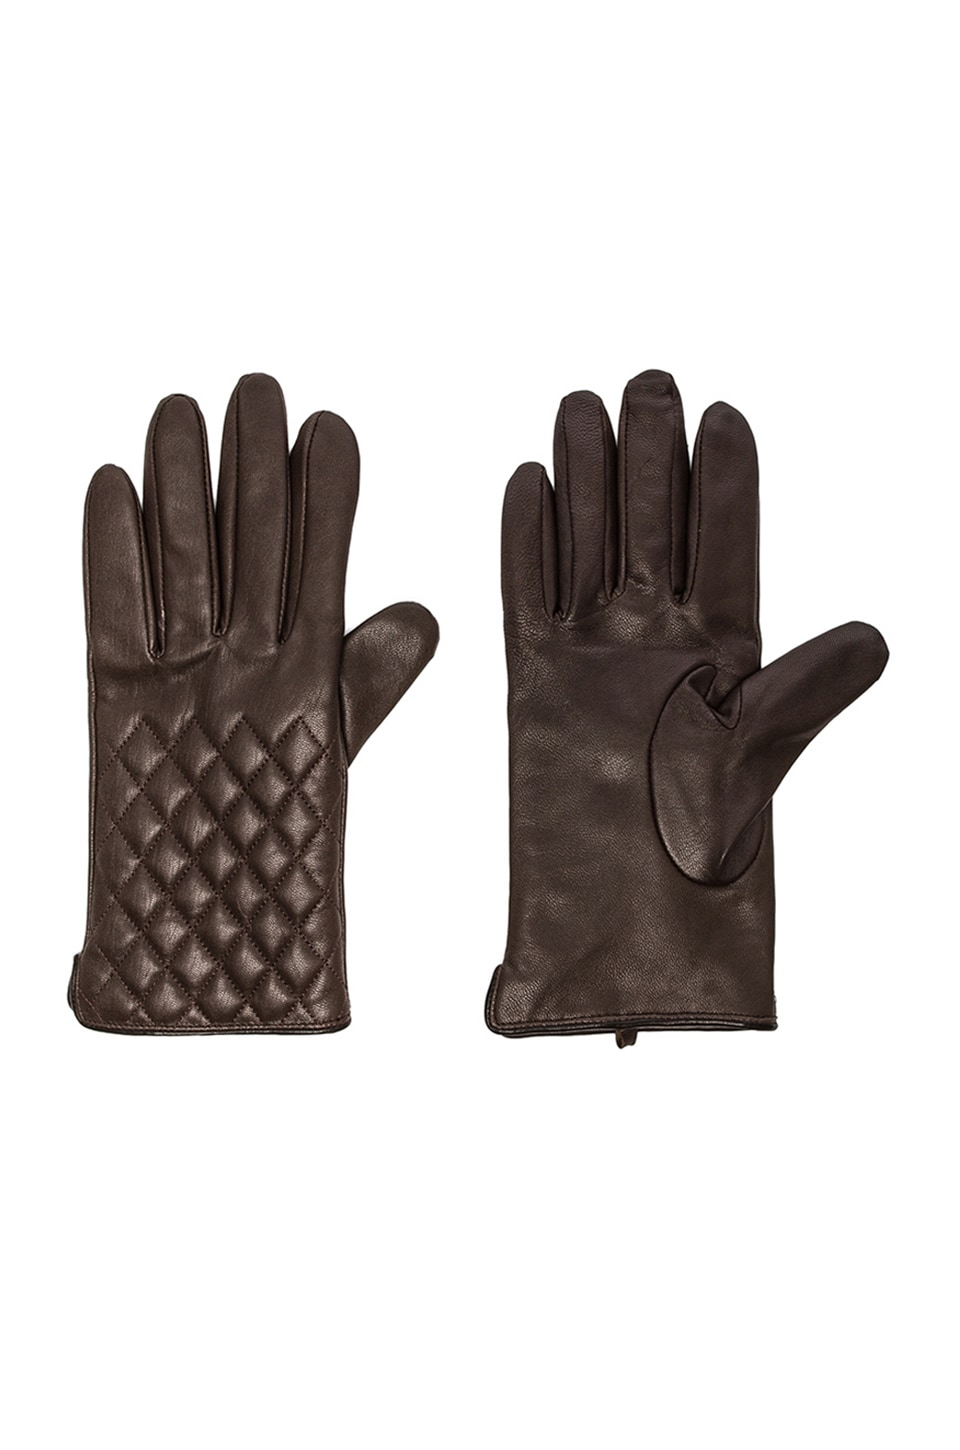 Soia & Kyo Luzzie Gloves in Cocoa